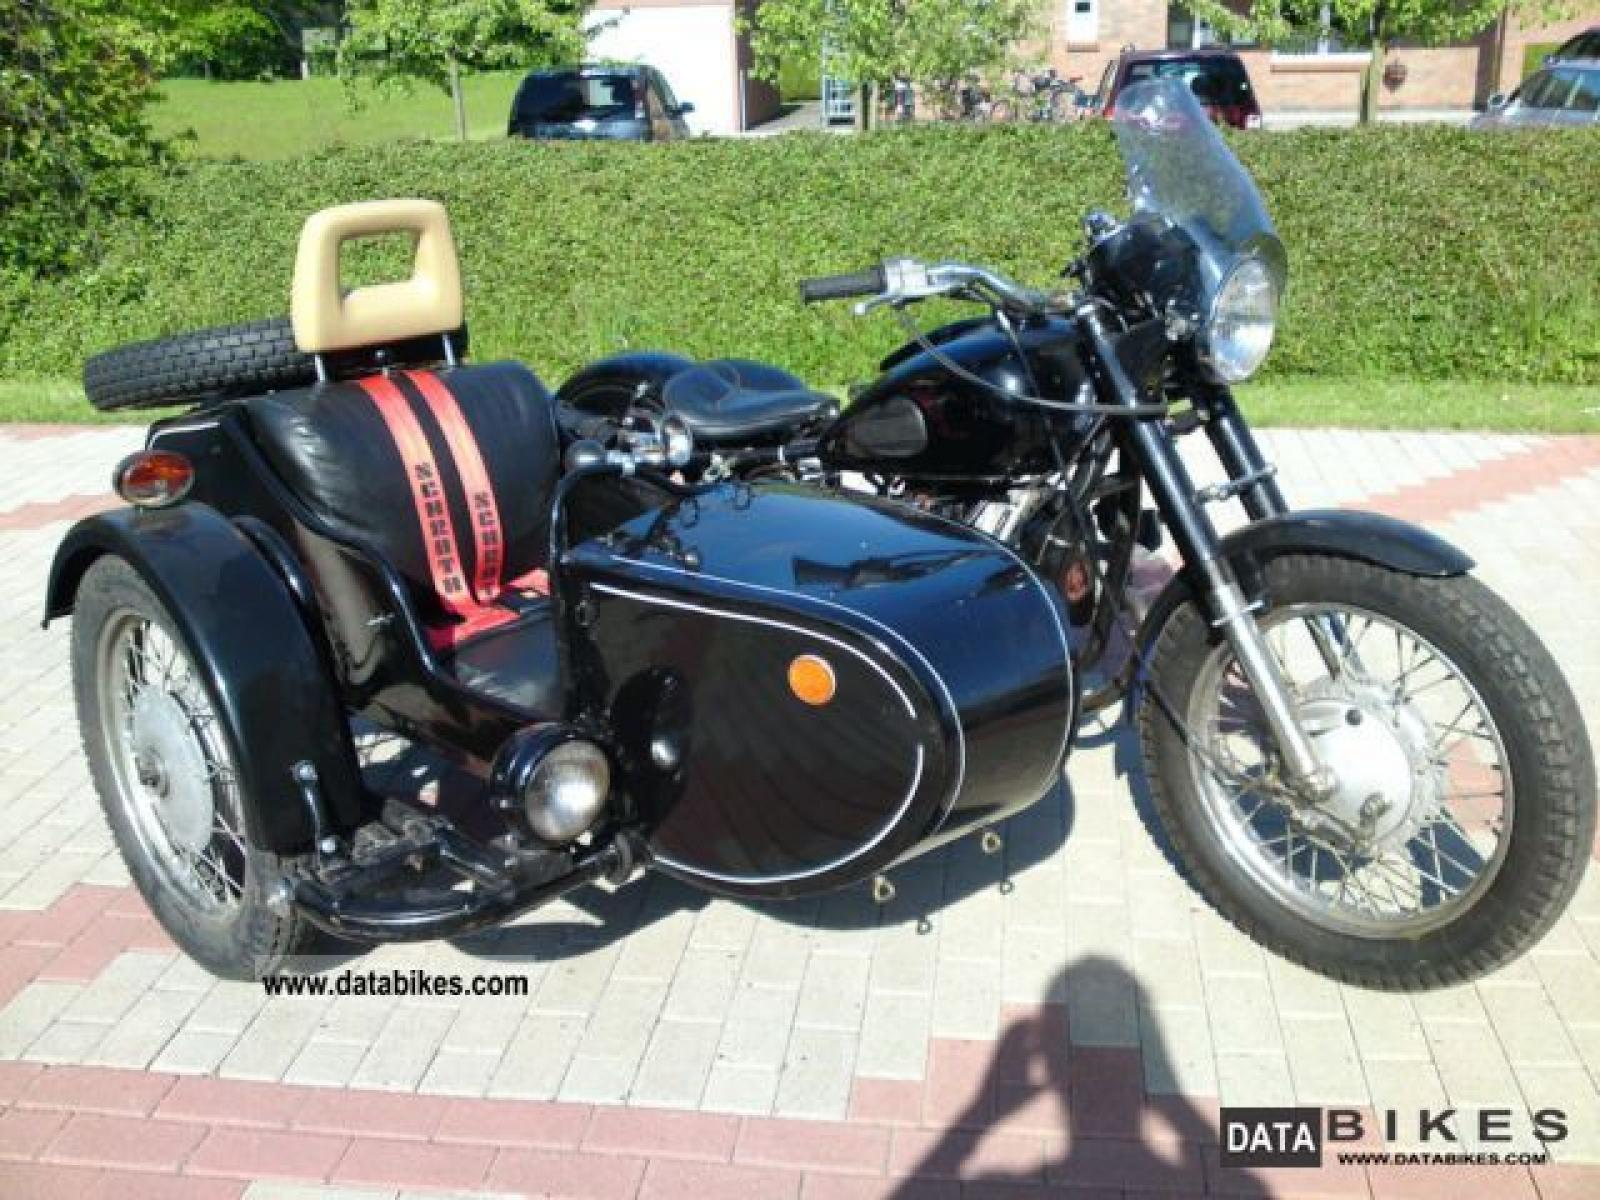 Dnepr MT 11 with sidecar 1991 images #70432